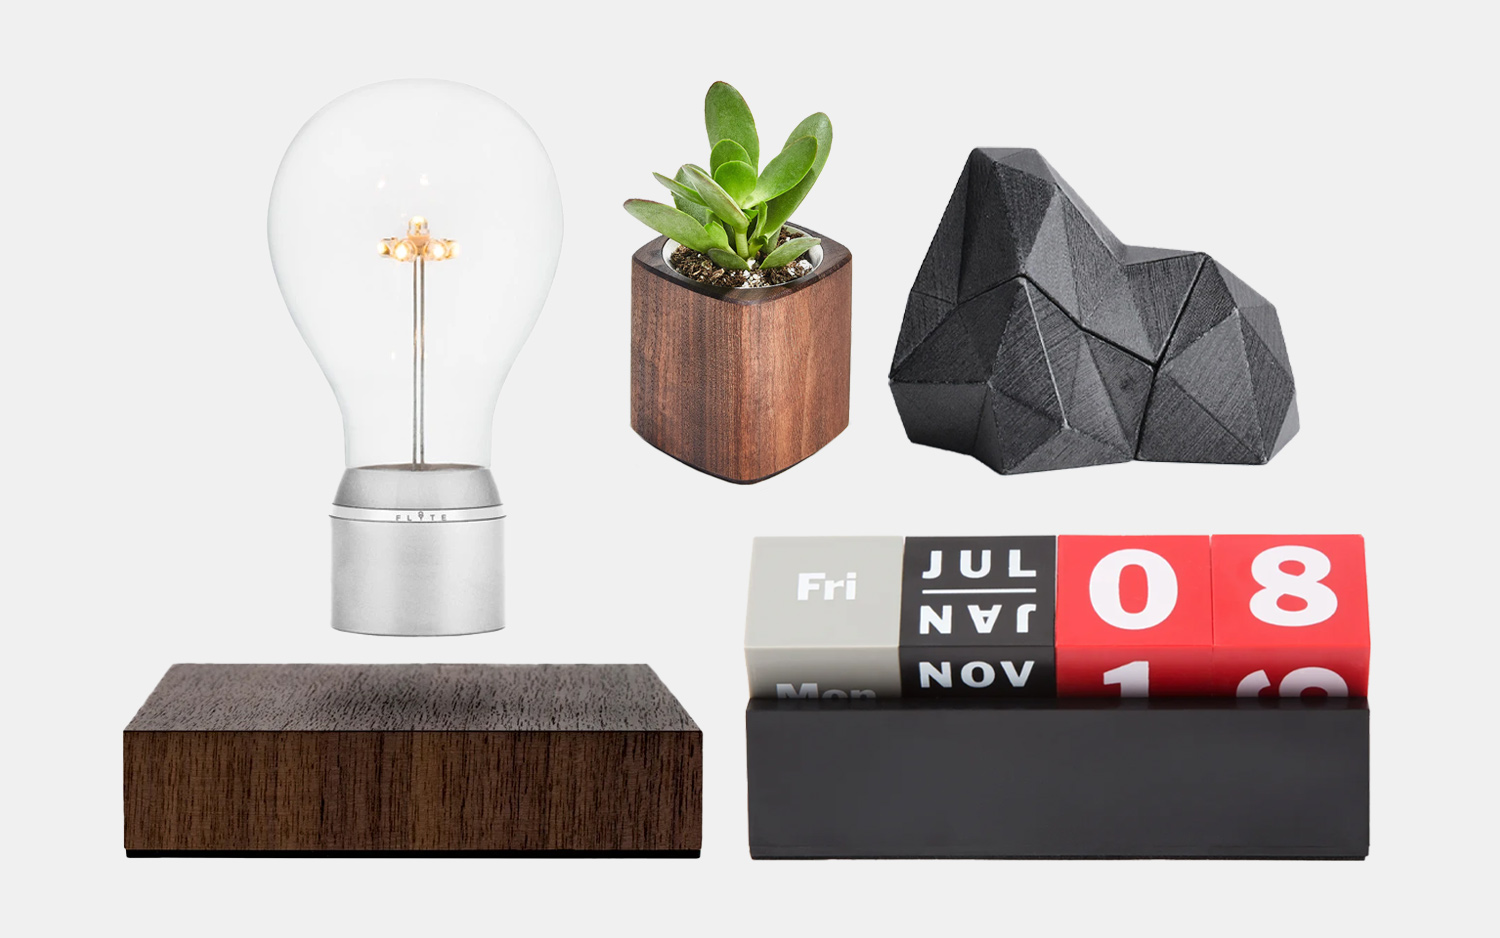 15 Desk Accessories for Your Home Office